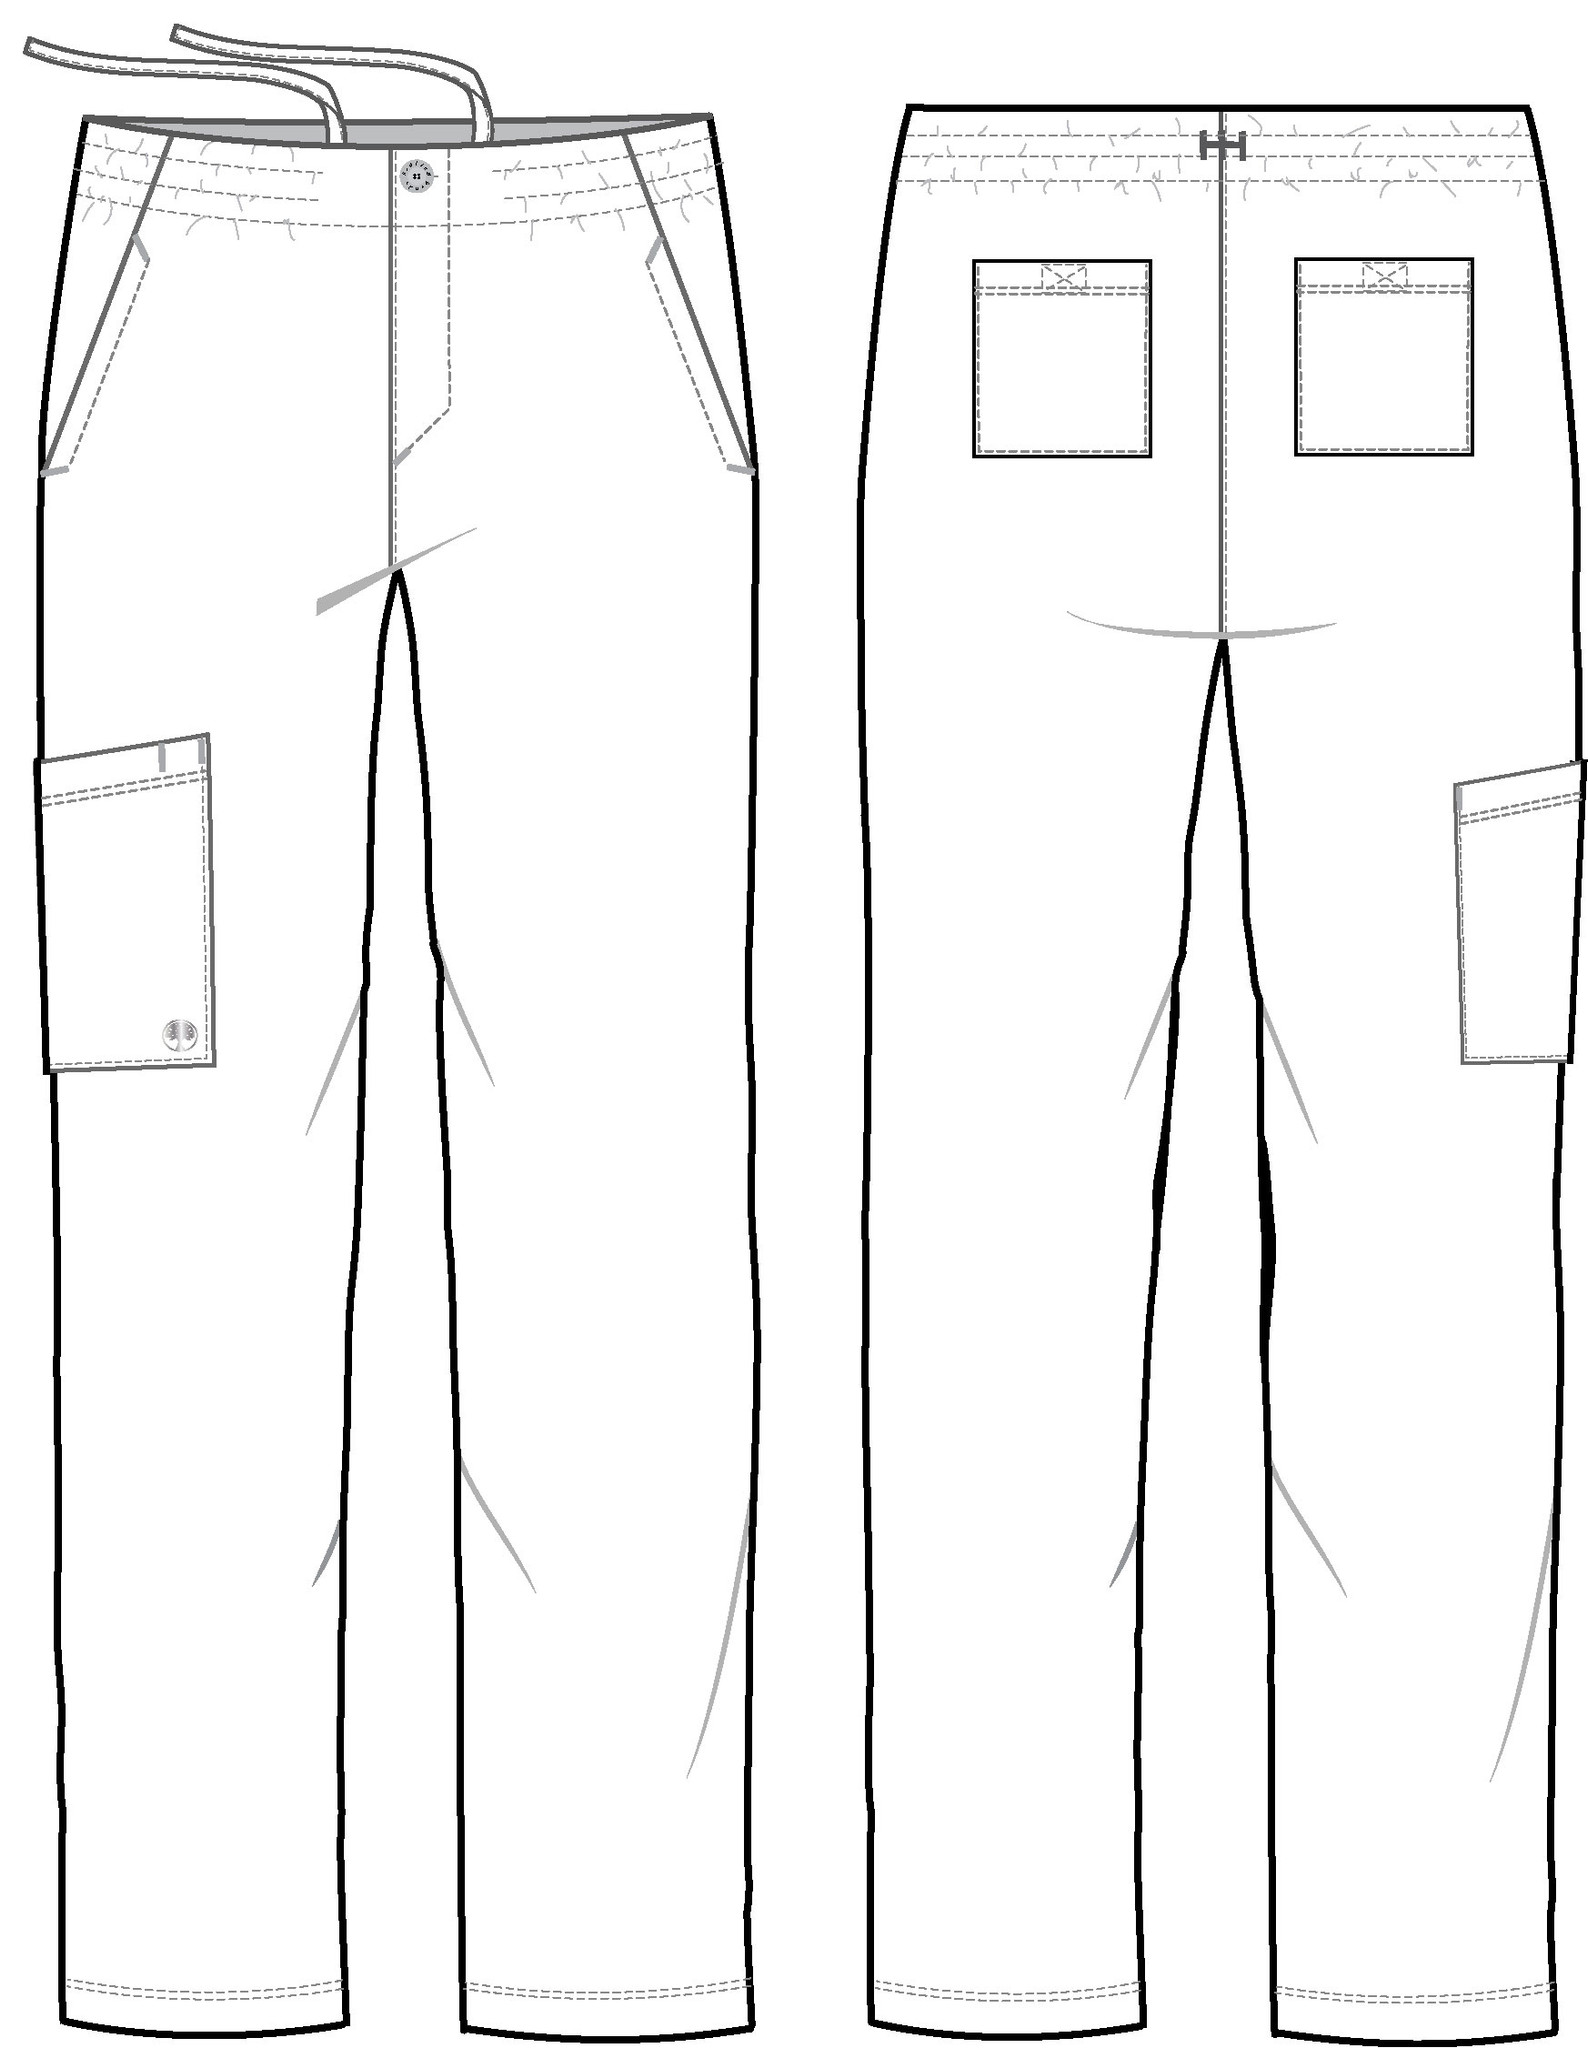 Healing Hands HH Works 9590 Ryan Men's Scrub Pant featuring drawstring tie front waist with elastic back, button and zip fly, five pockets including two back pockets and a cargo pocket, straight leg, and four way spandex stretch. line art Image front / back.